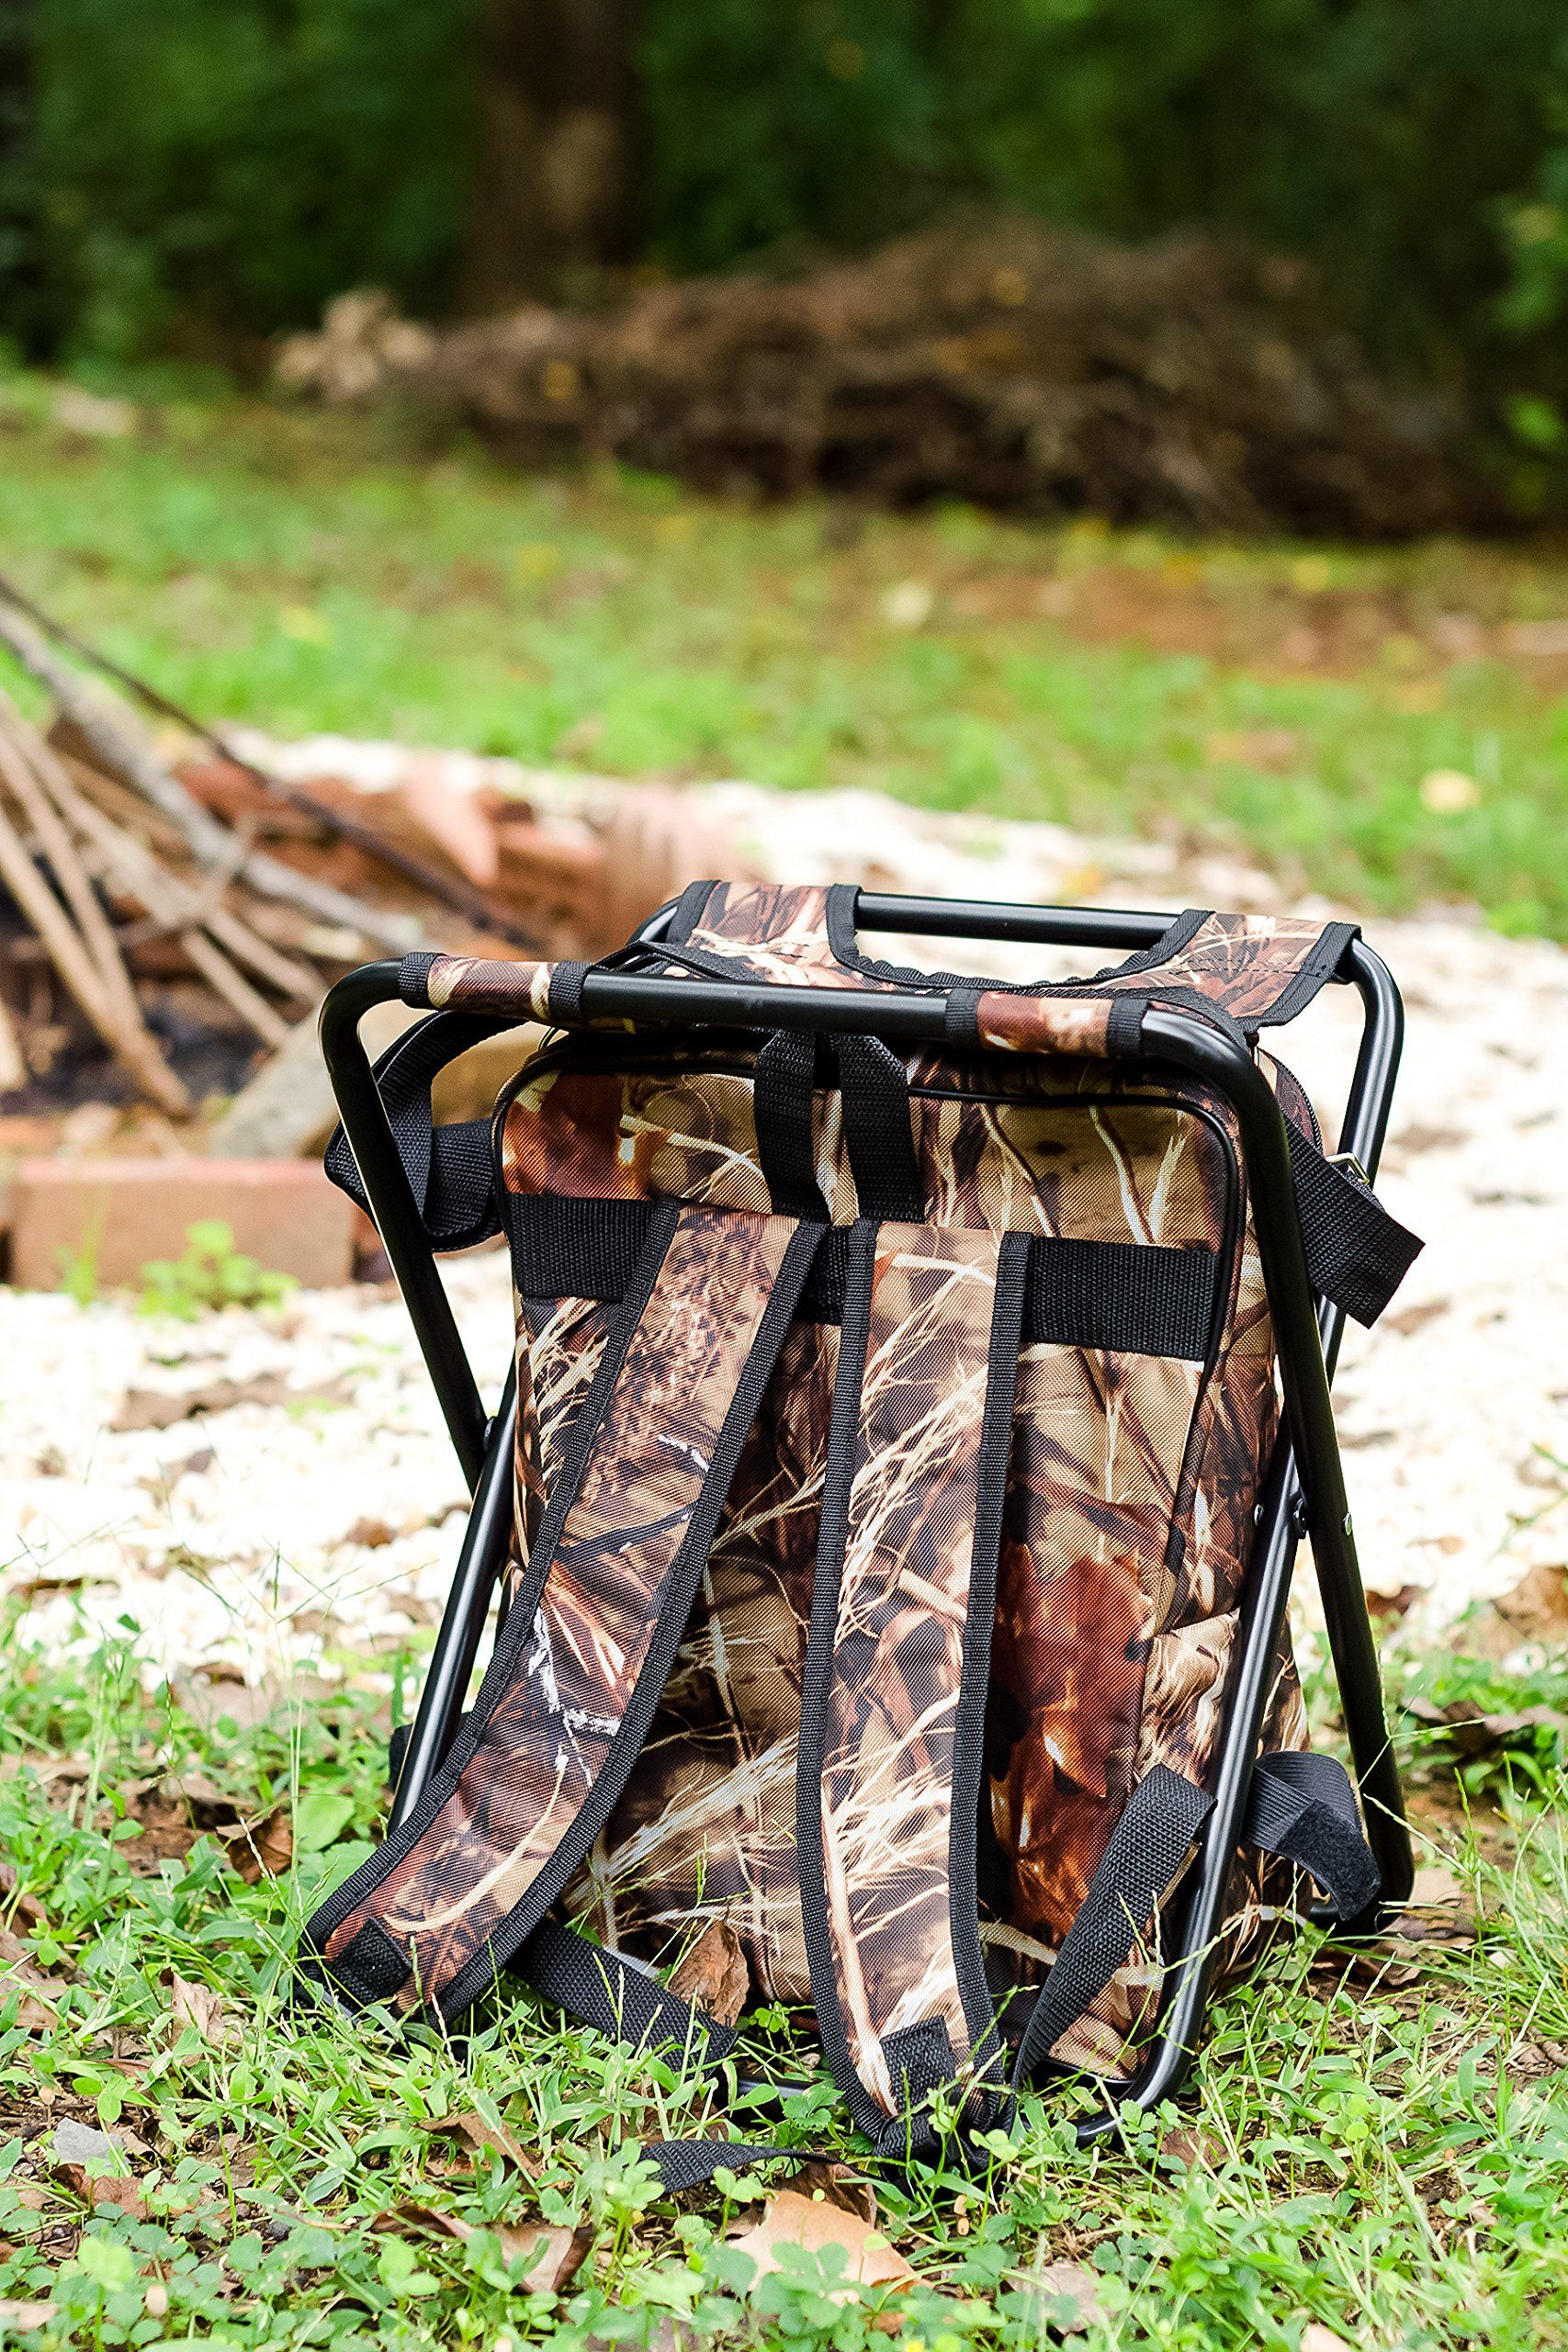 Camco 51908 Camping Stool Backpack Cooler Camo ** You can